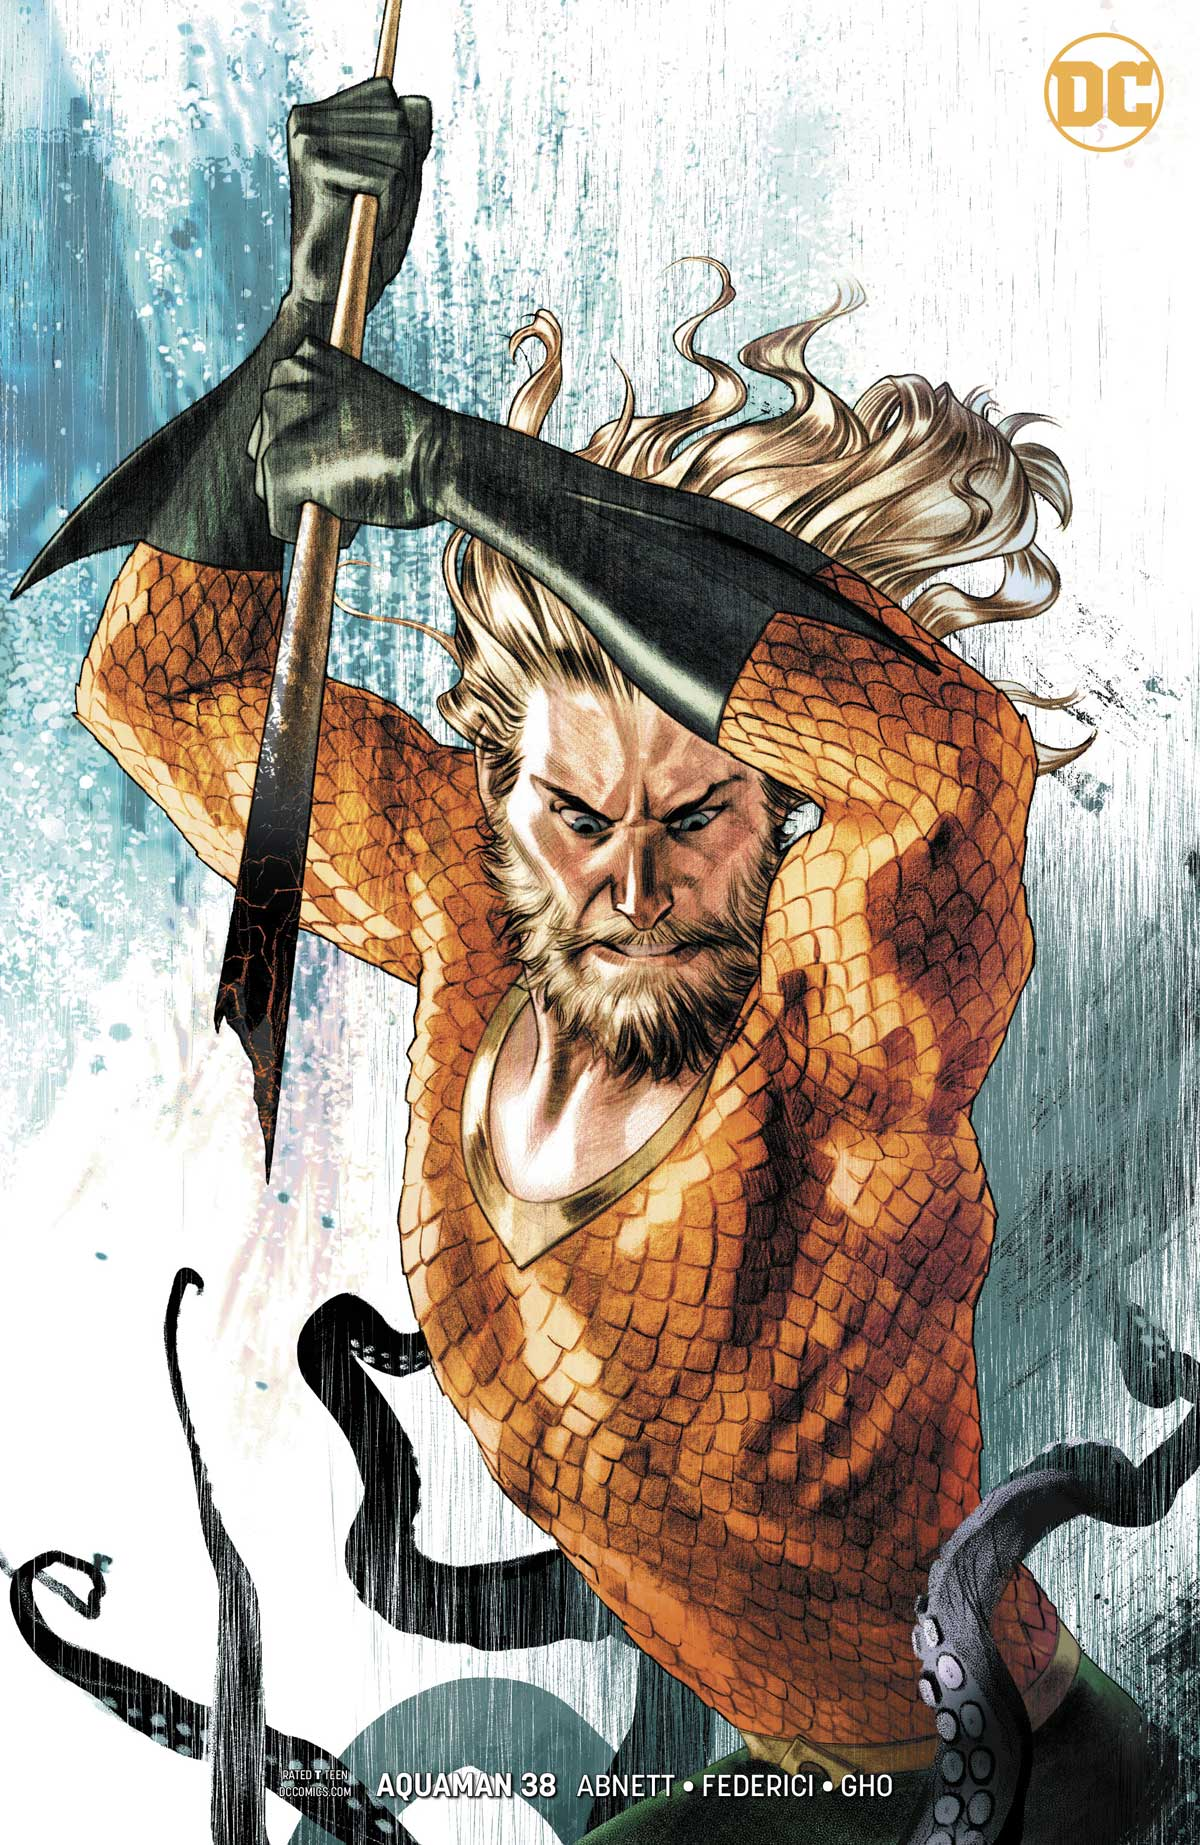 Aquaman variant covers by Joshua Middleton